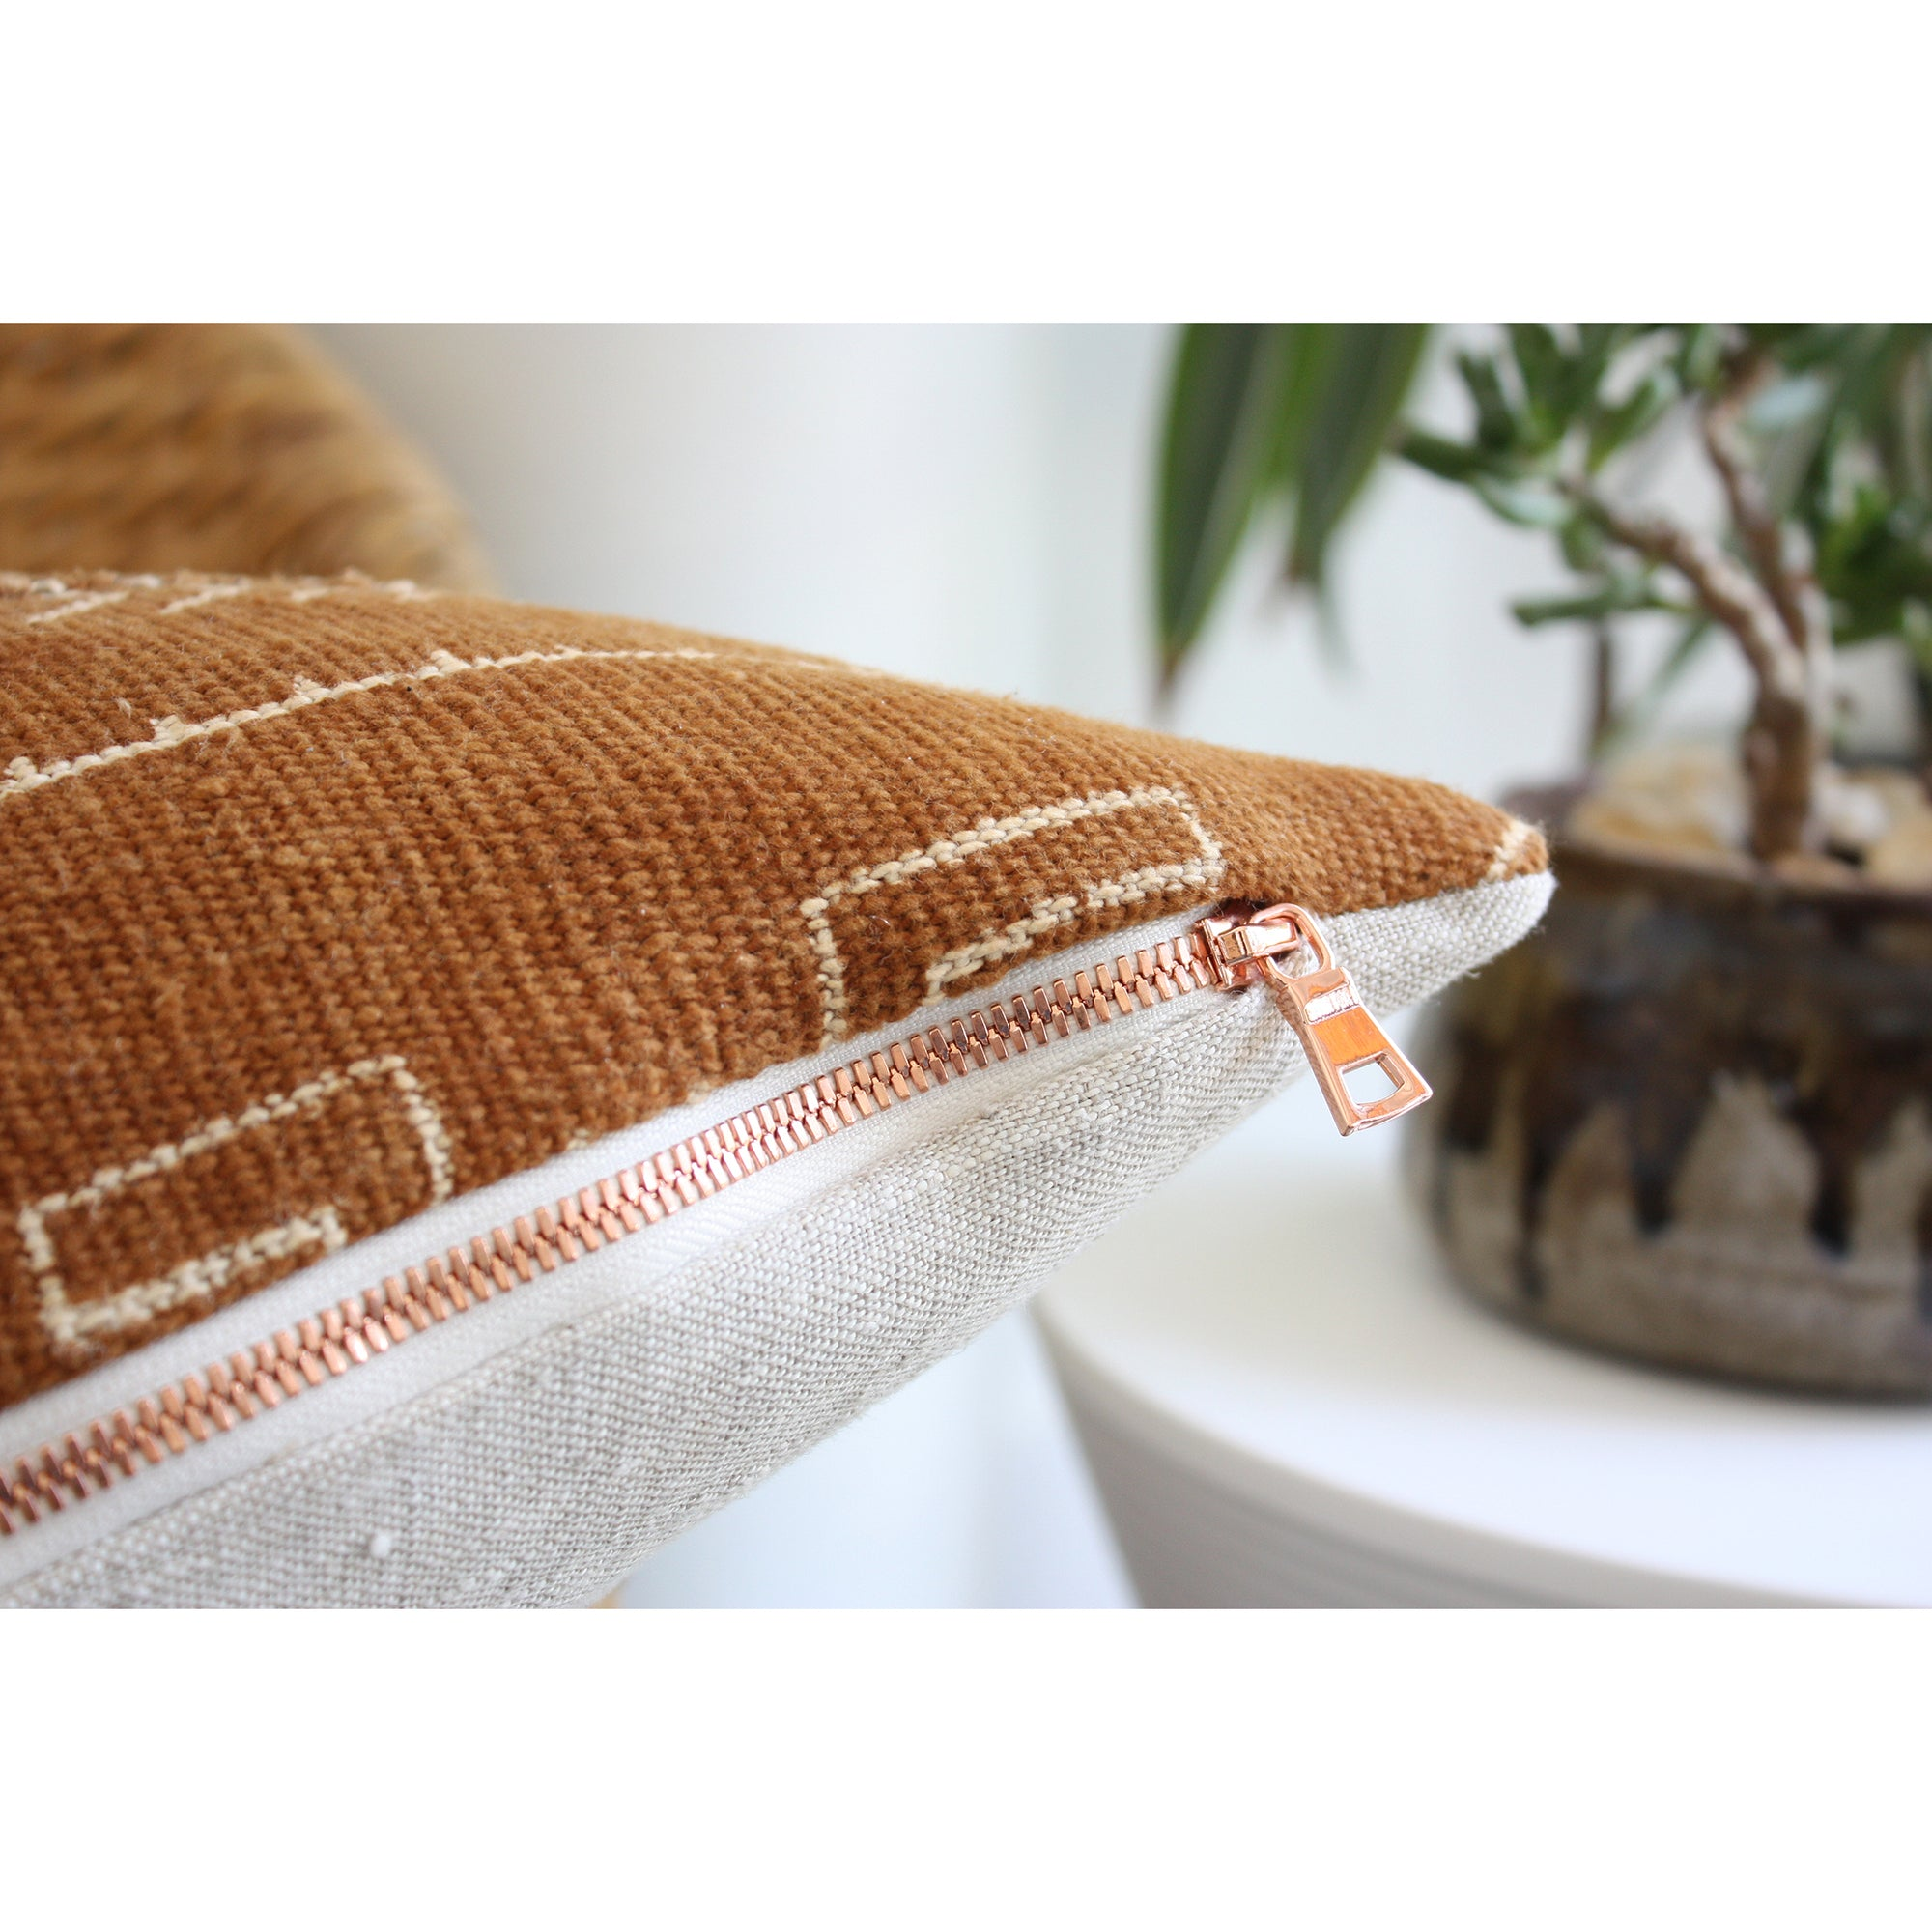 20x20 Square - African Mudcloth Pillow Cover -  Rust Small Geometric, Copper Zipper